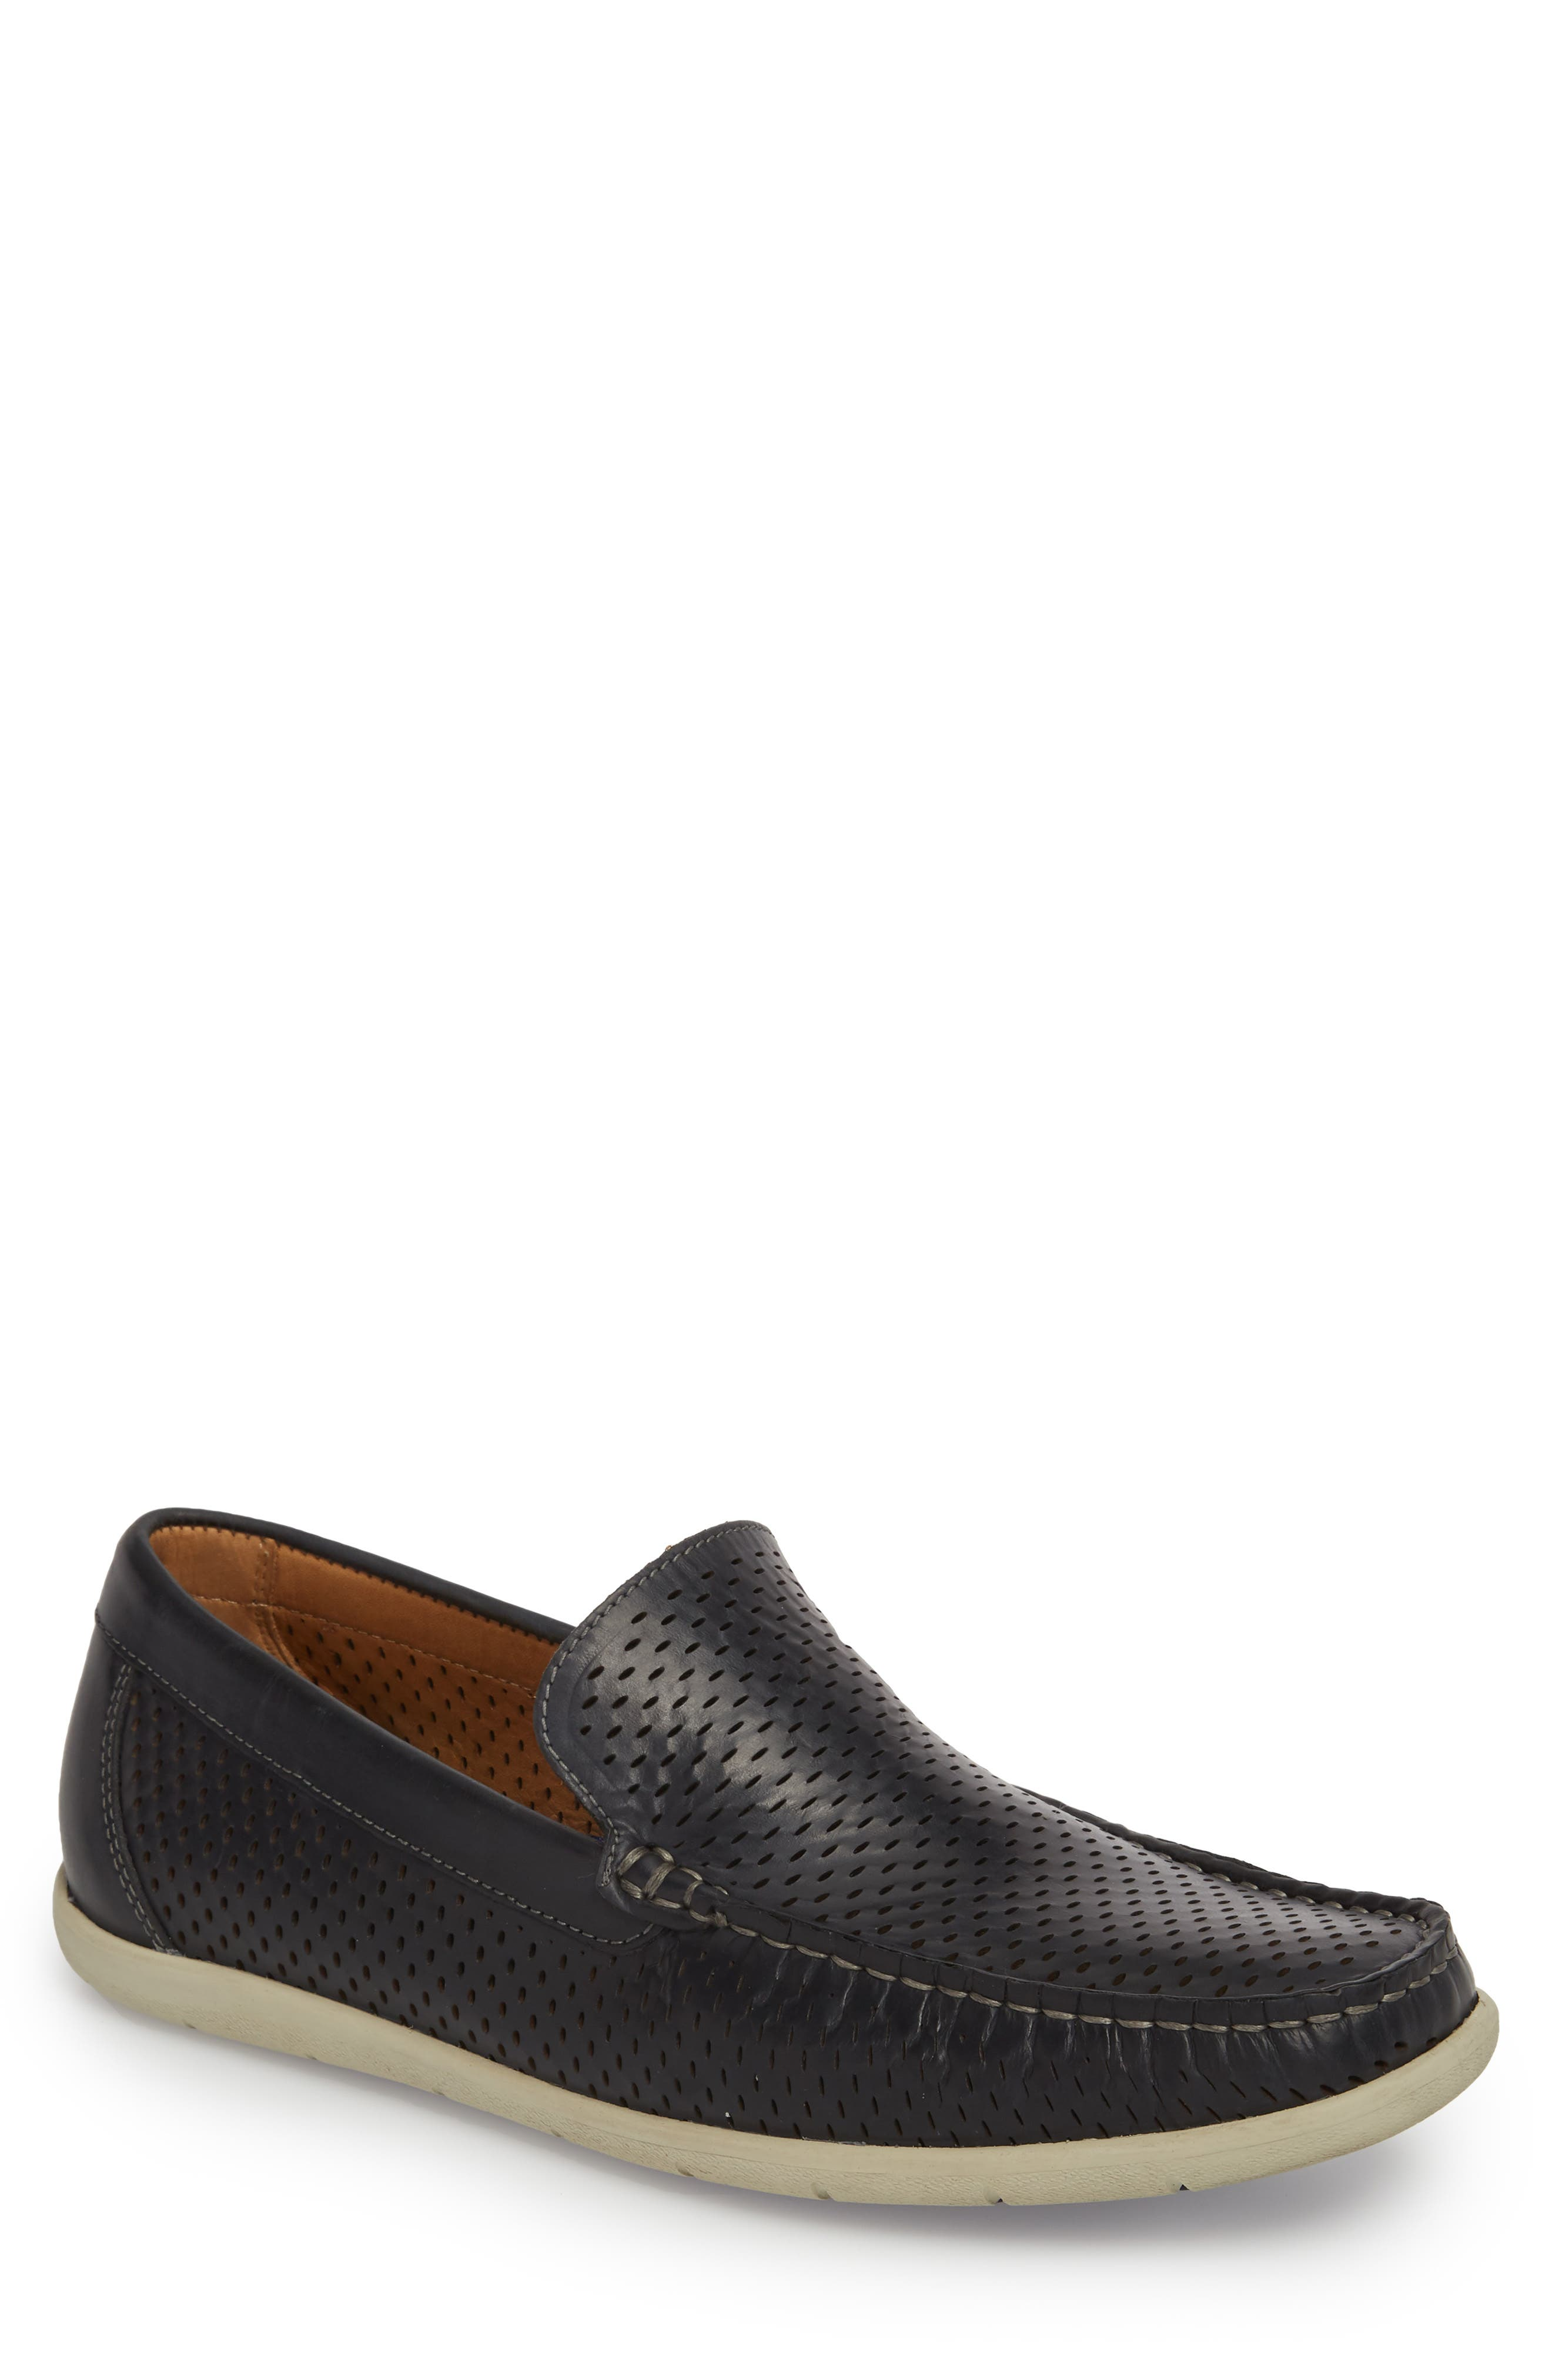 Manhattan Loafer,                         Main,                         color, NAVY LEATHER